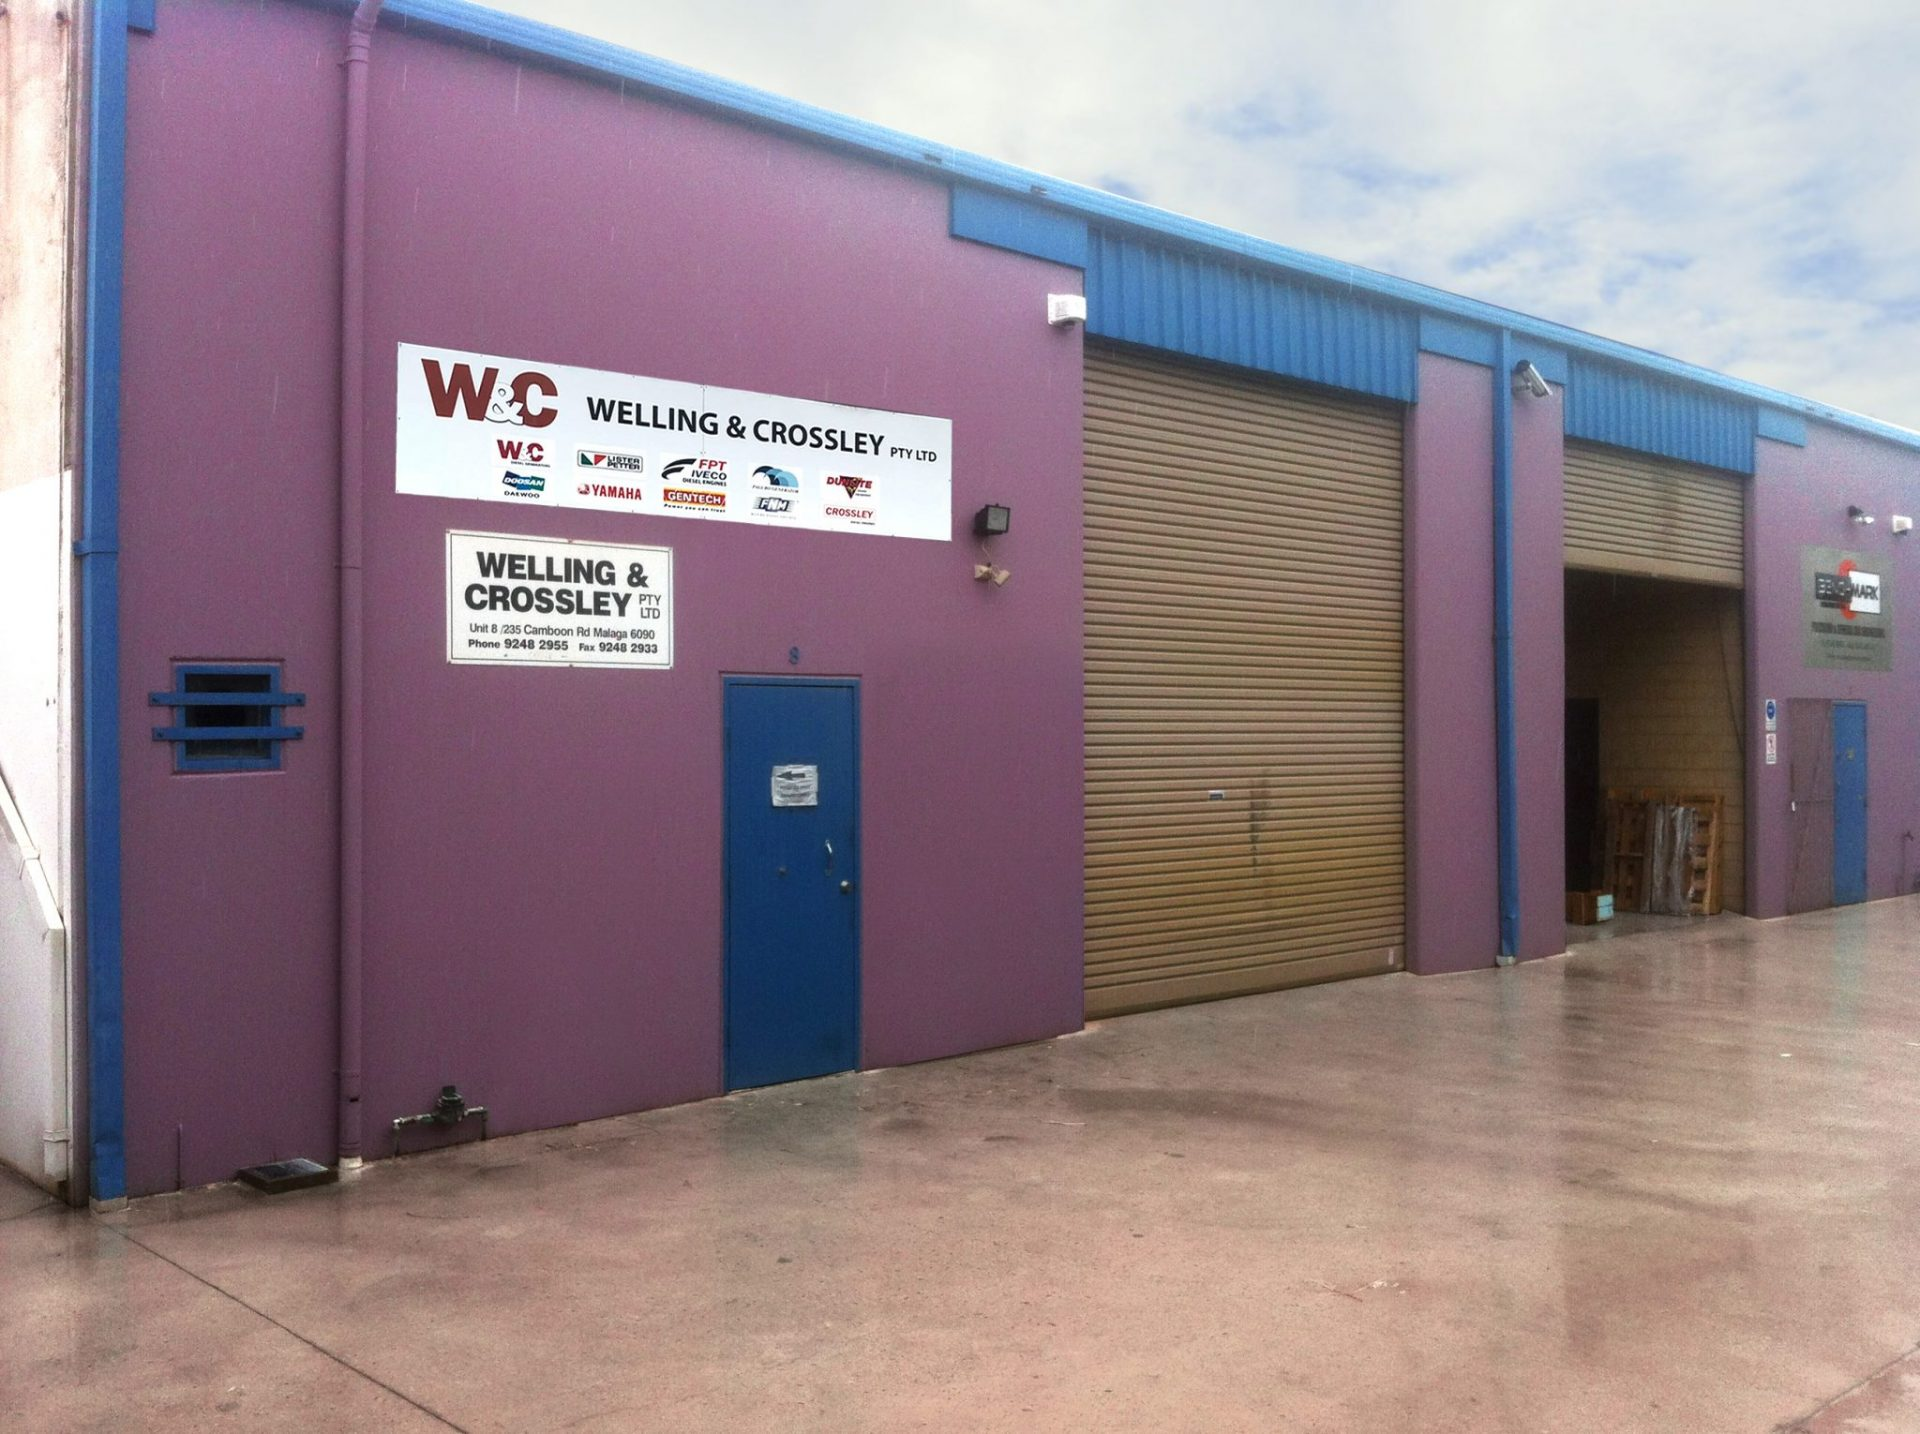 Yamaha Generators office in Perth, Western Australia